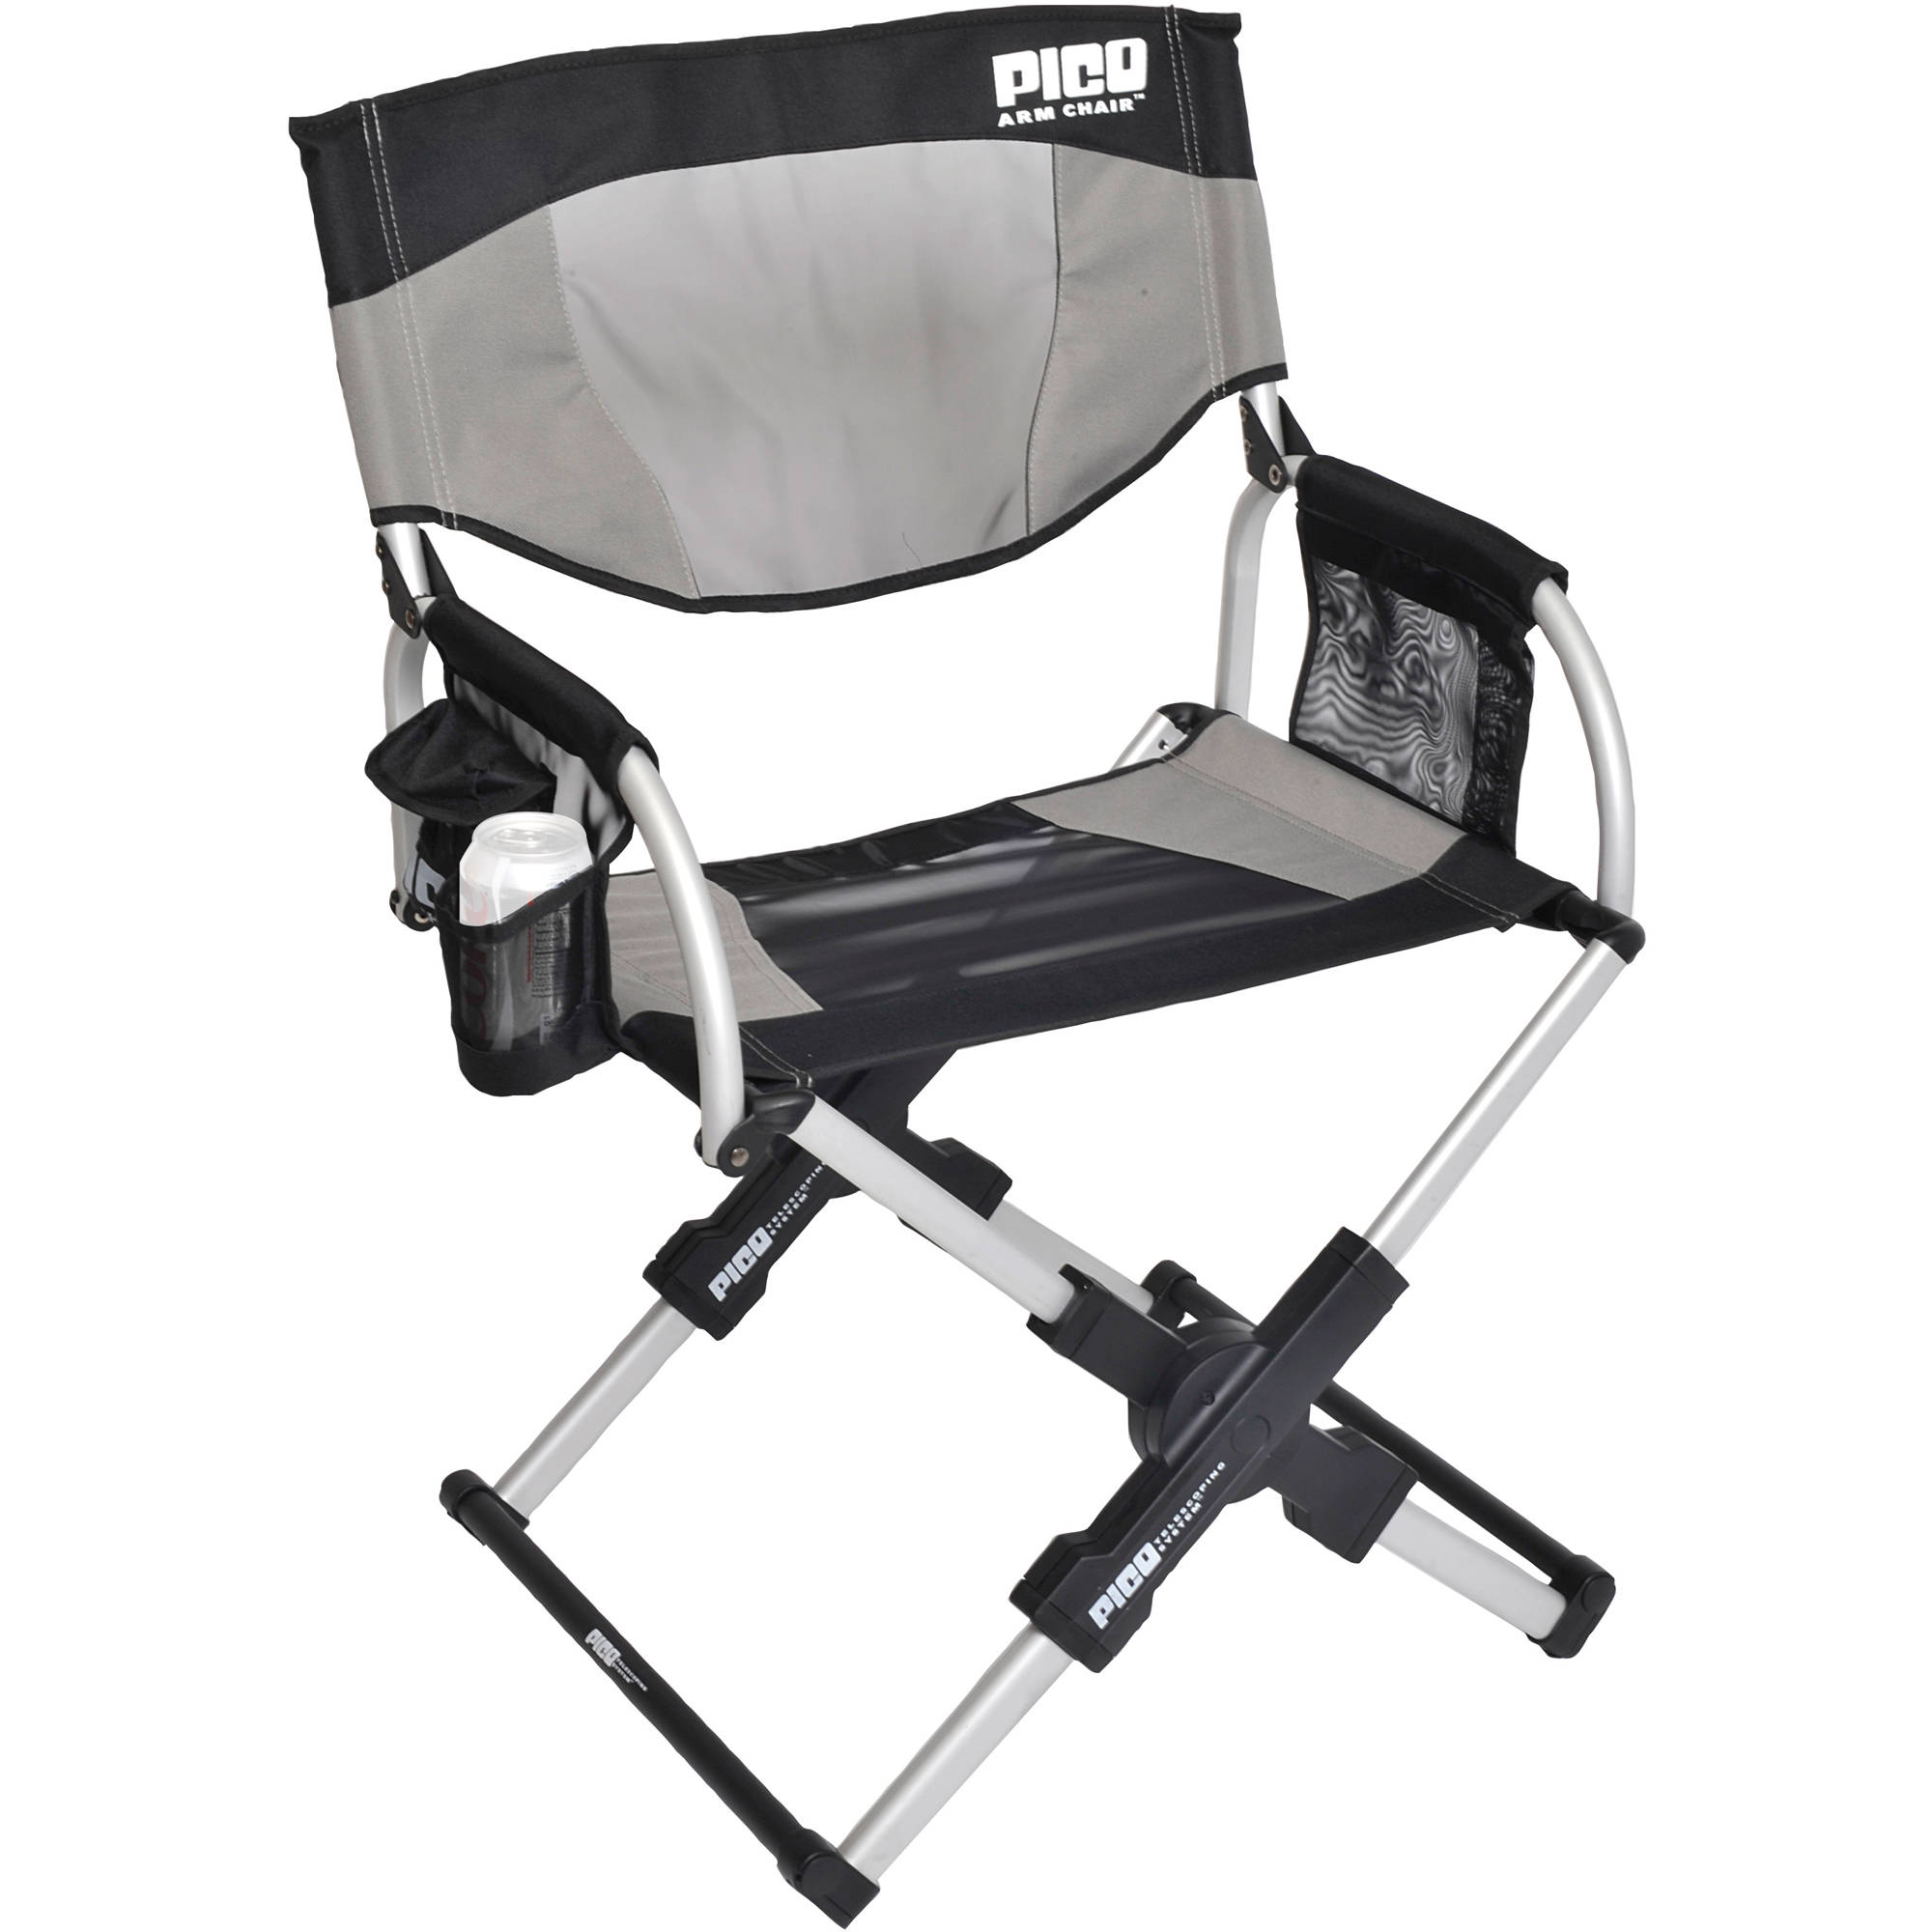 pico arm chair ergo office chairs reviews gci outdoor telescoping director 39s sage 18020